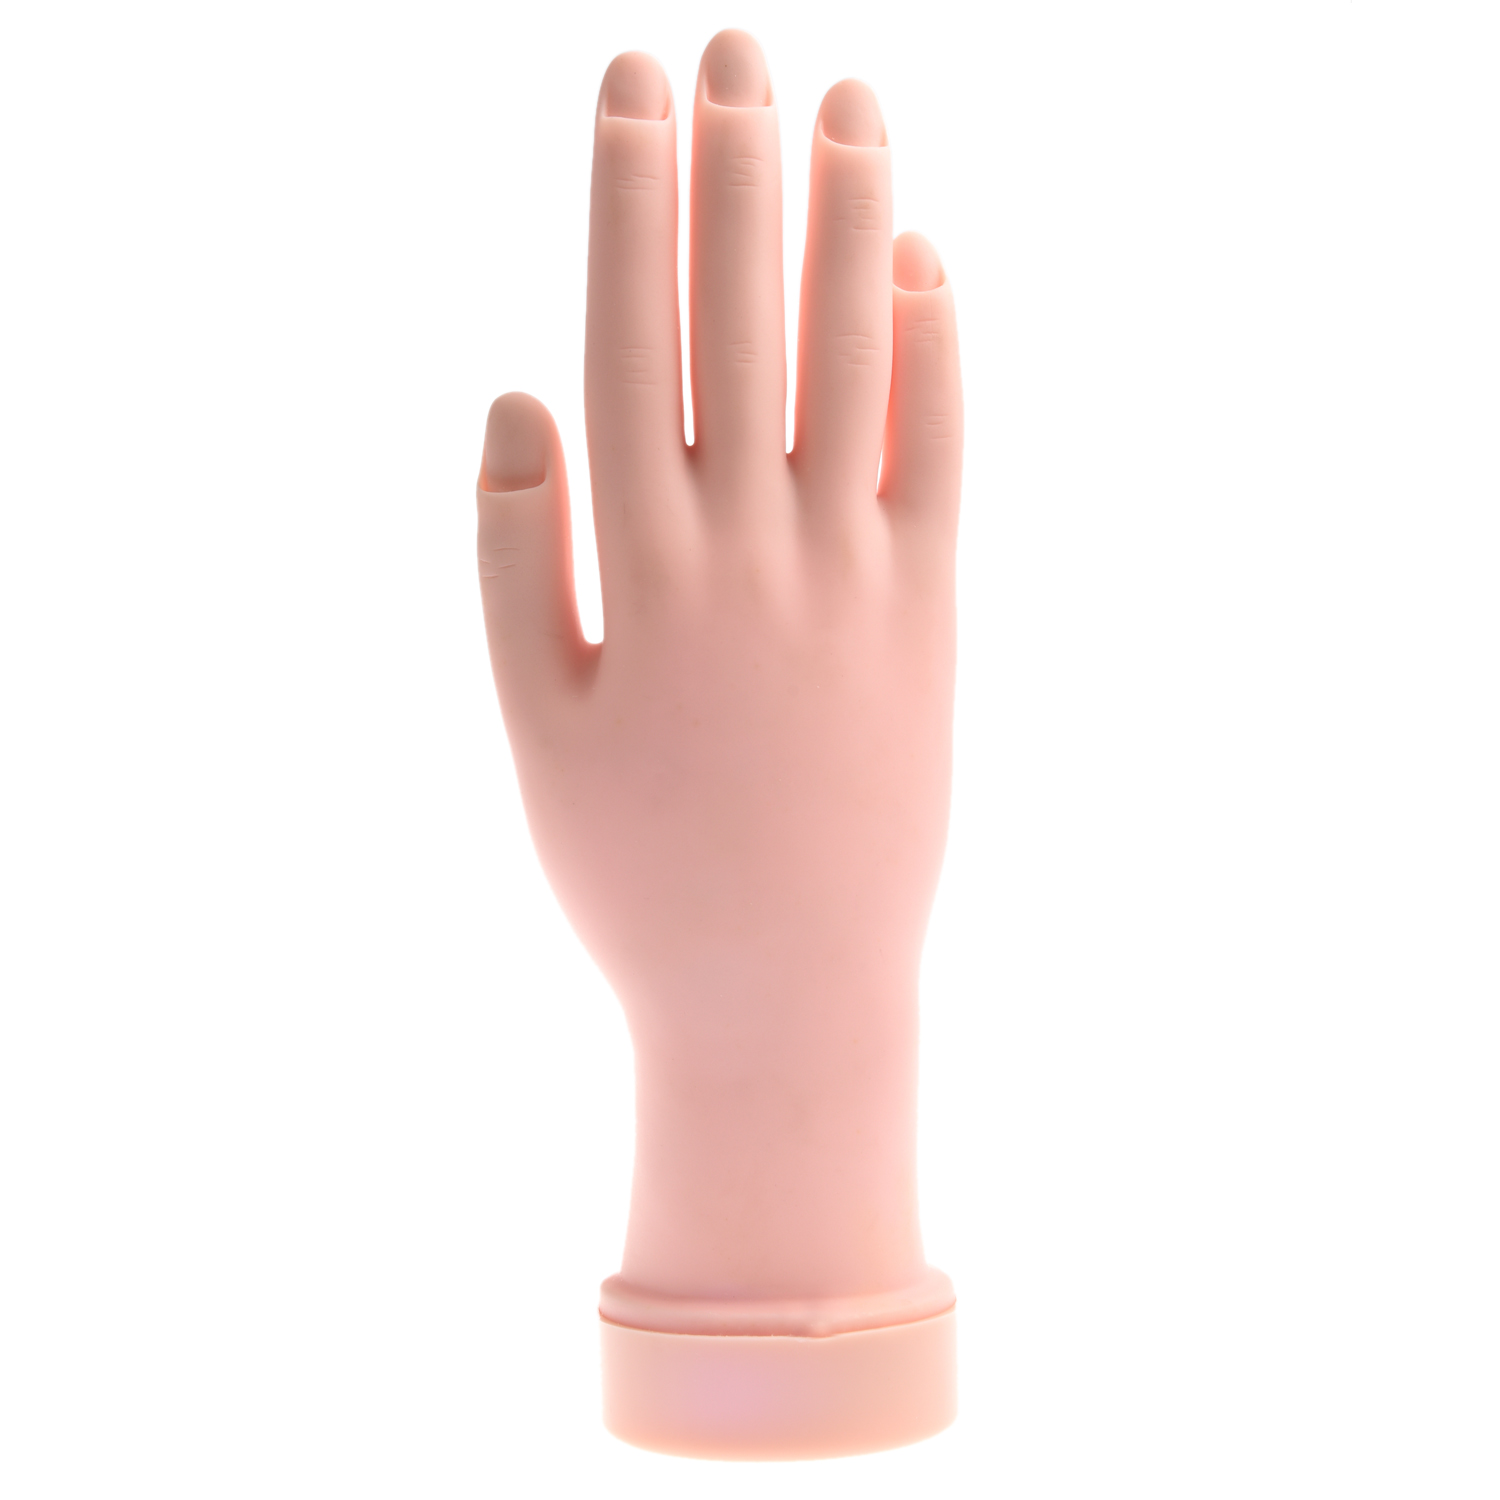 Aliexpress Buy Movable Soft Practice Hand For Nail